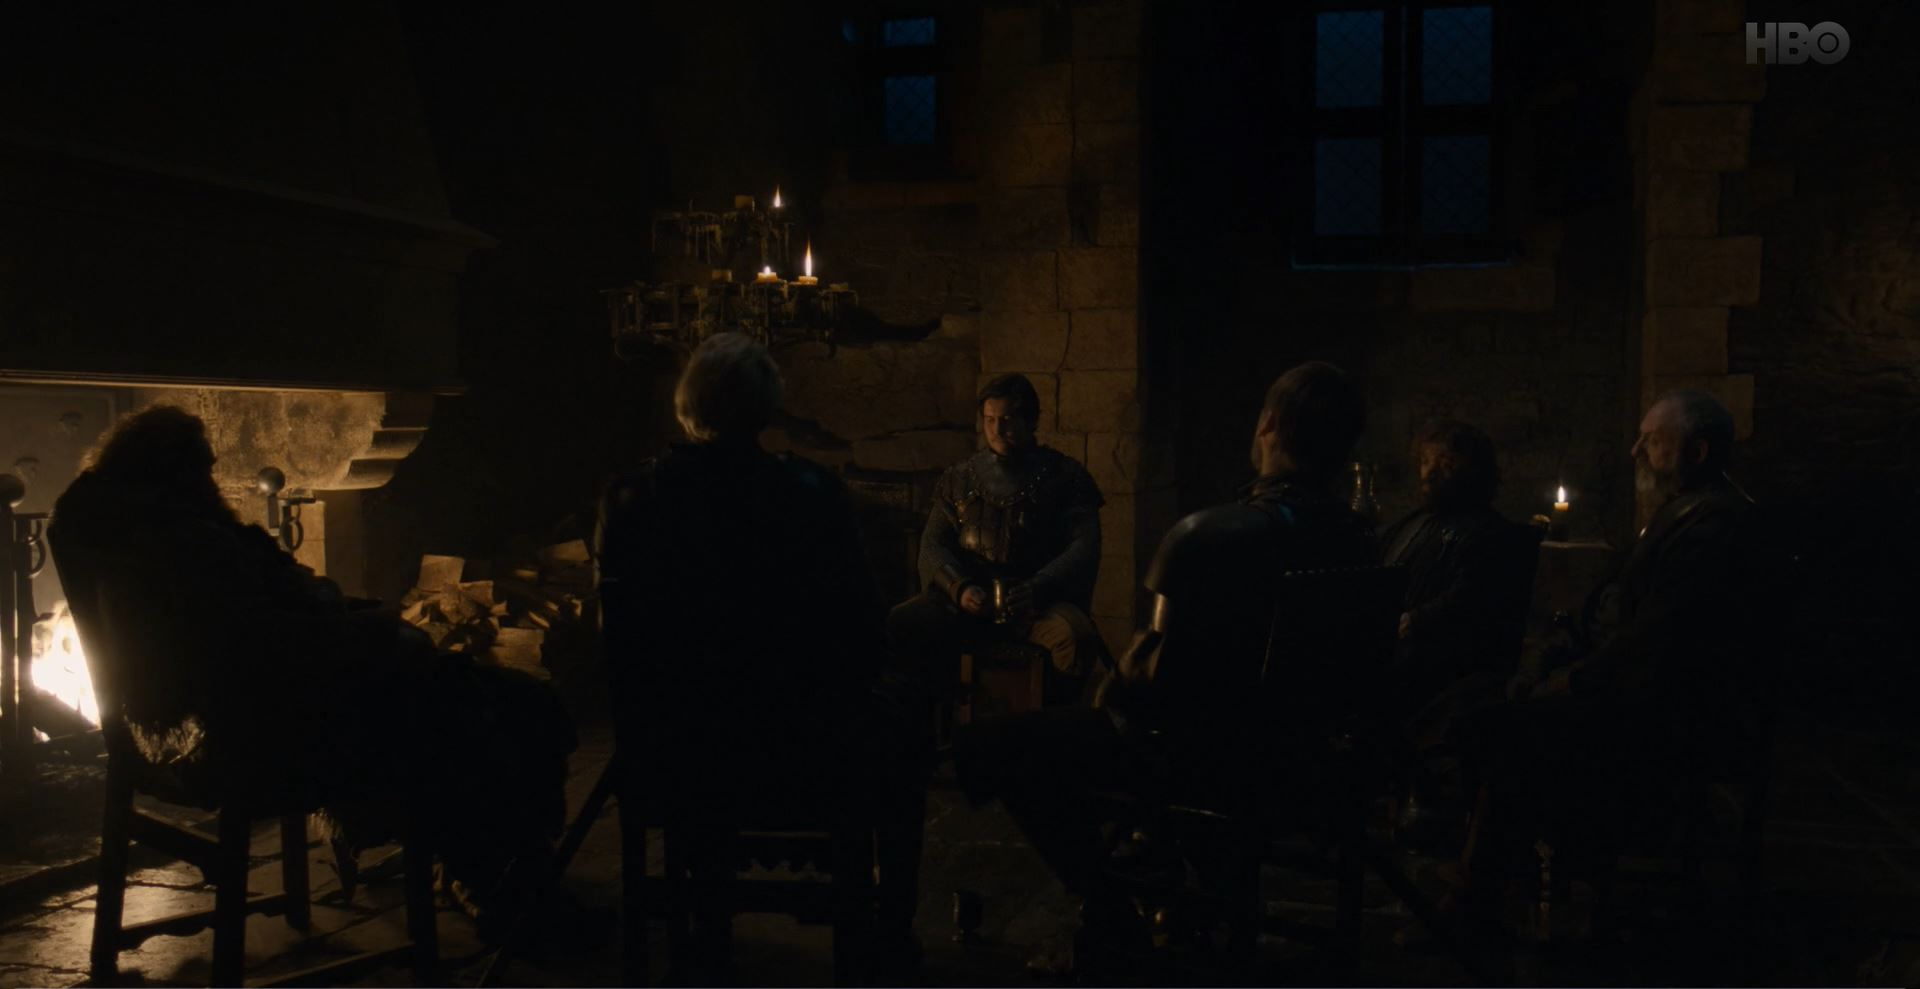 Game of Thrones S08E02 A Knight of the Seven Kingdoms Review - Davos, Podrick, Tyrion, Jaime, Brienne and Tormund around the fire